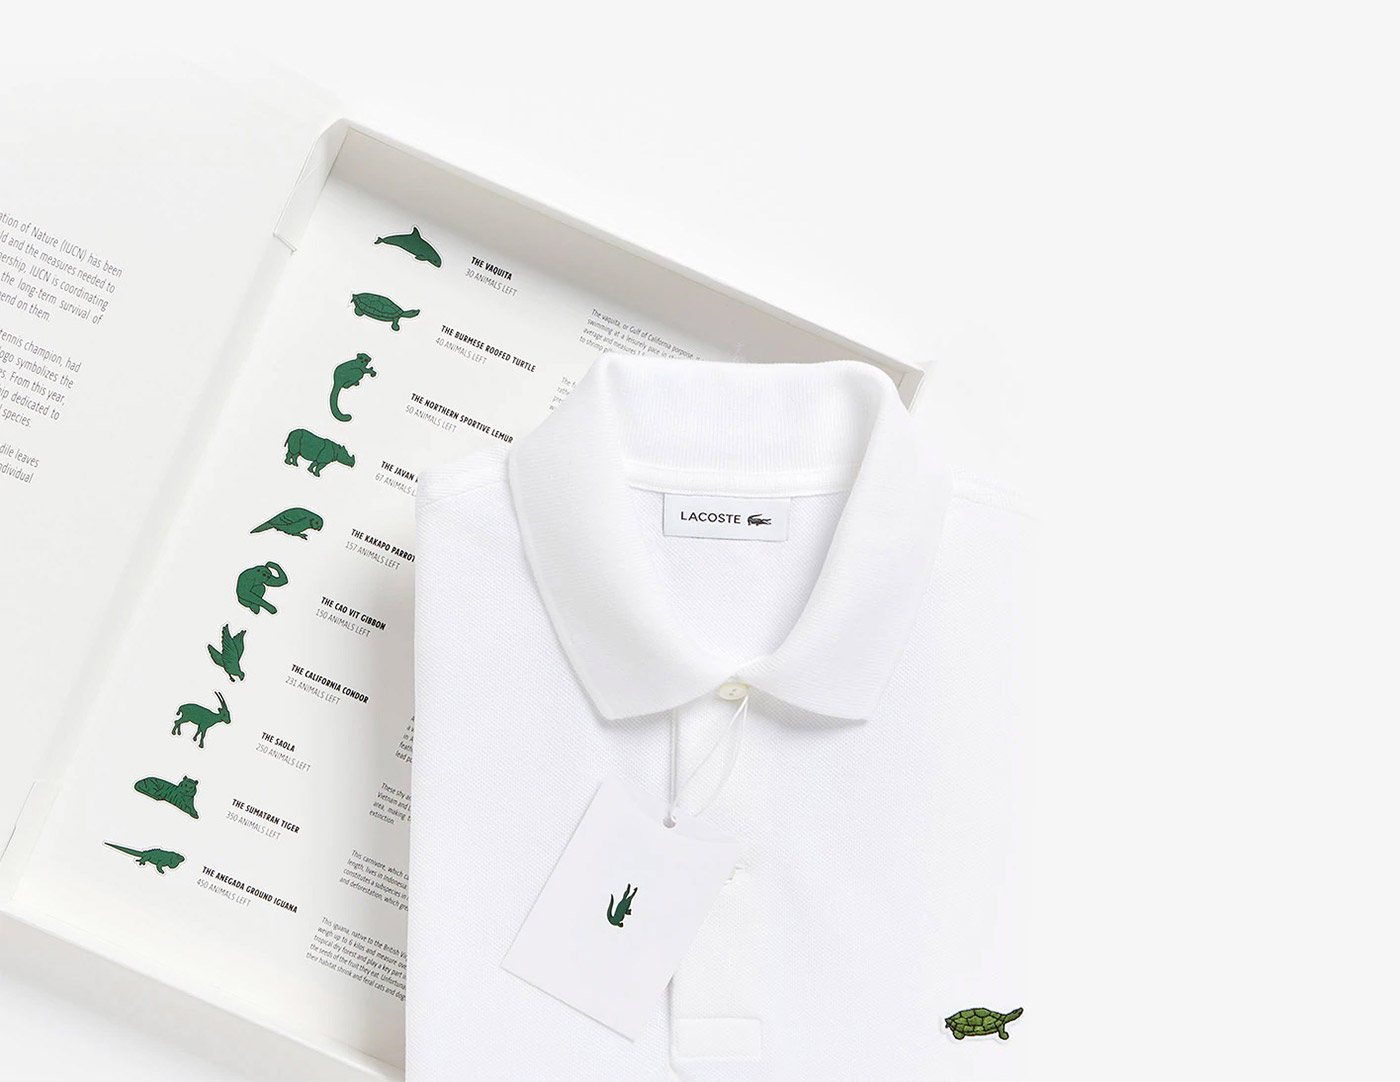 https://www.lacoste.com/us/saveourspecies.htmlSave Our SpeciesCR: Lacoste